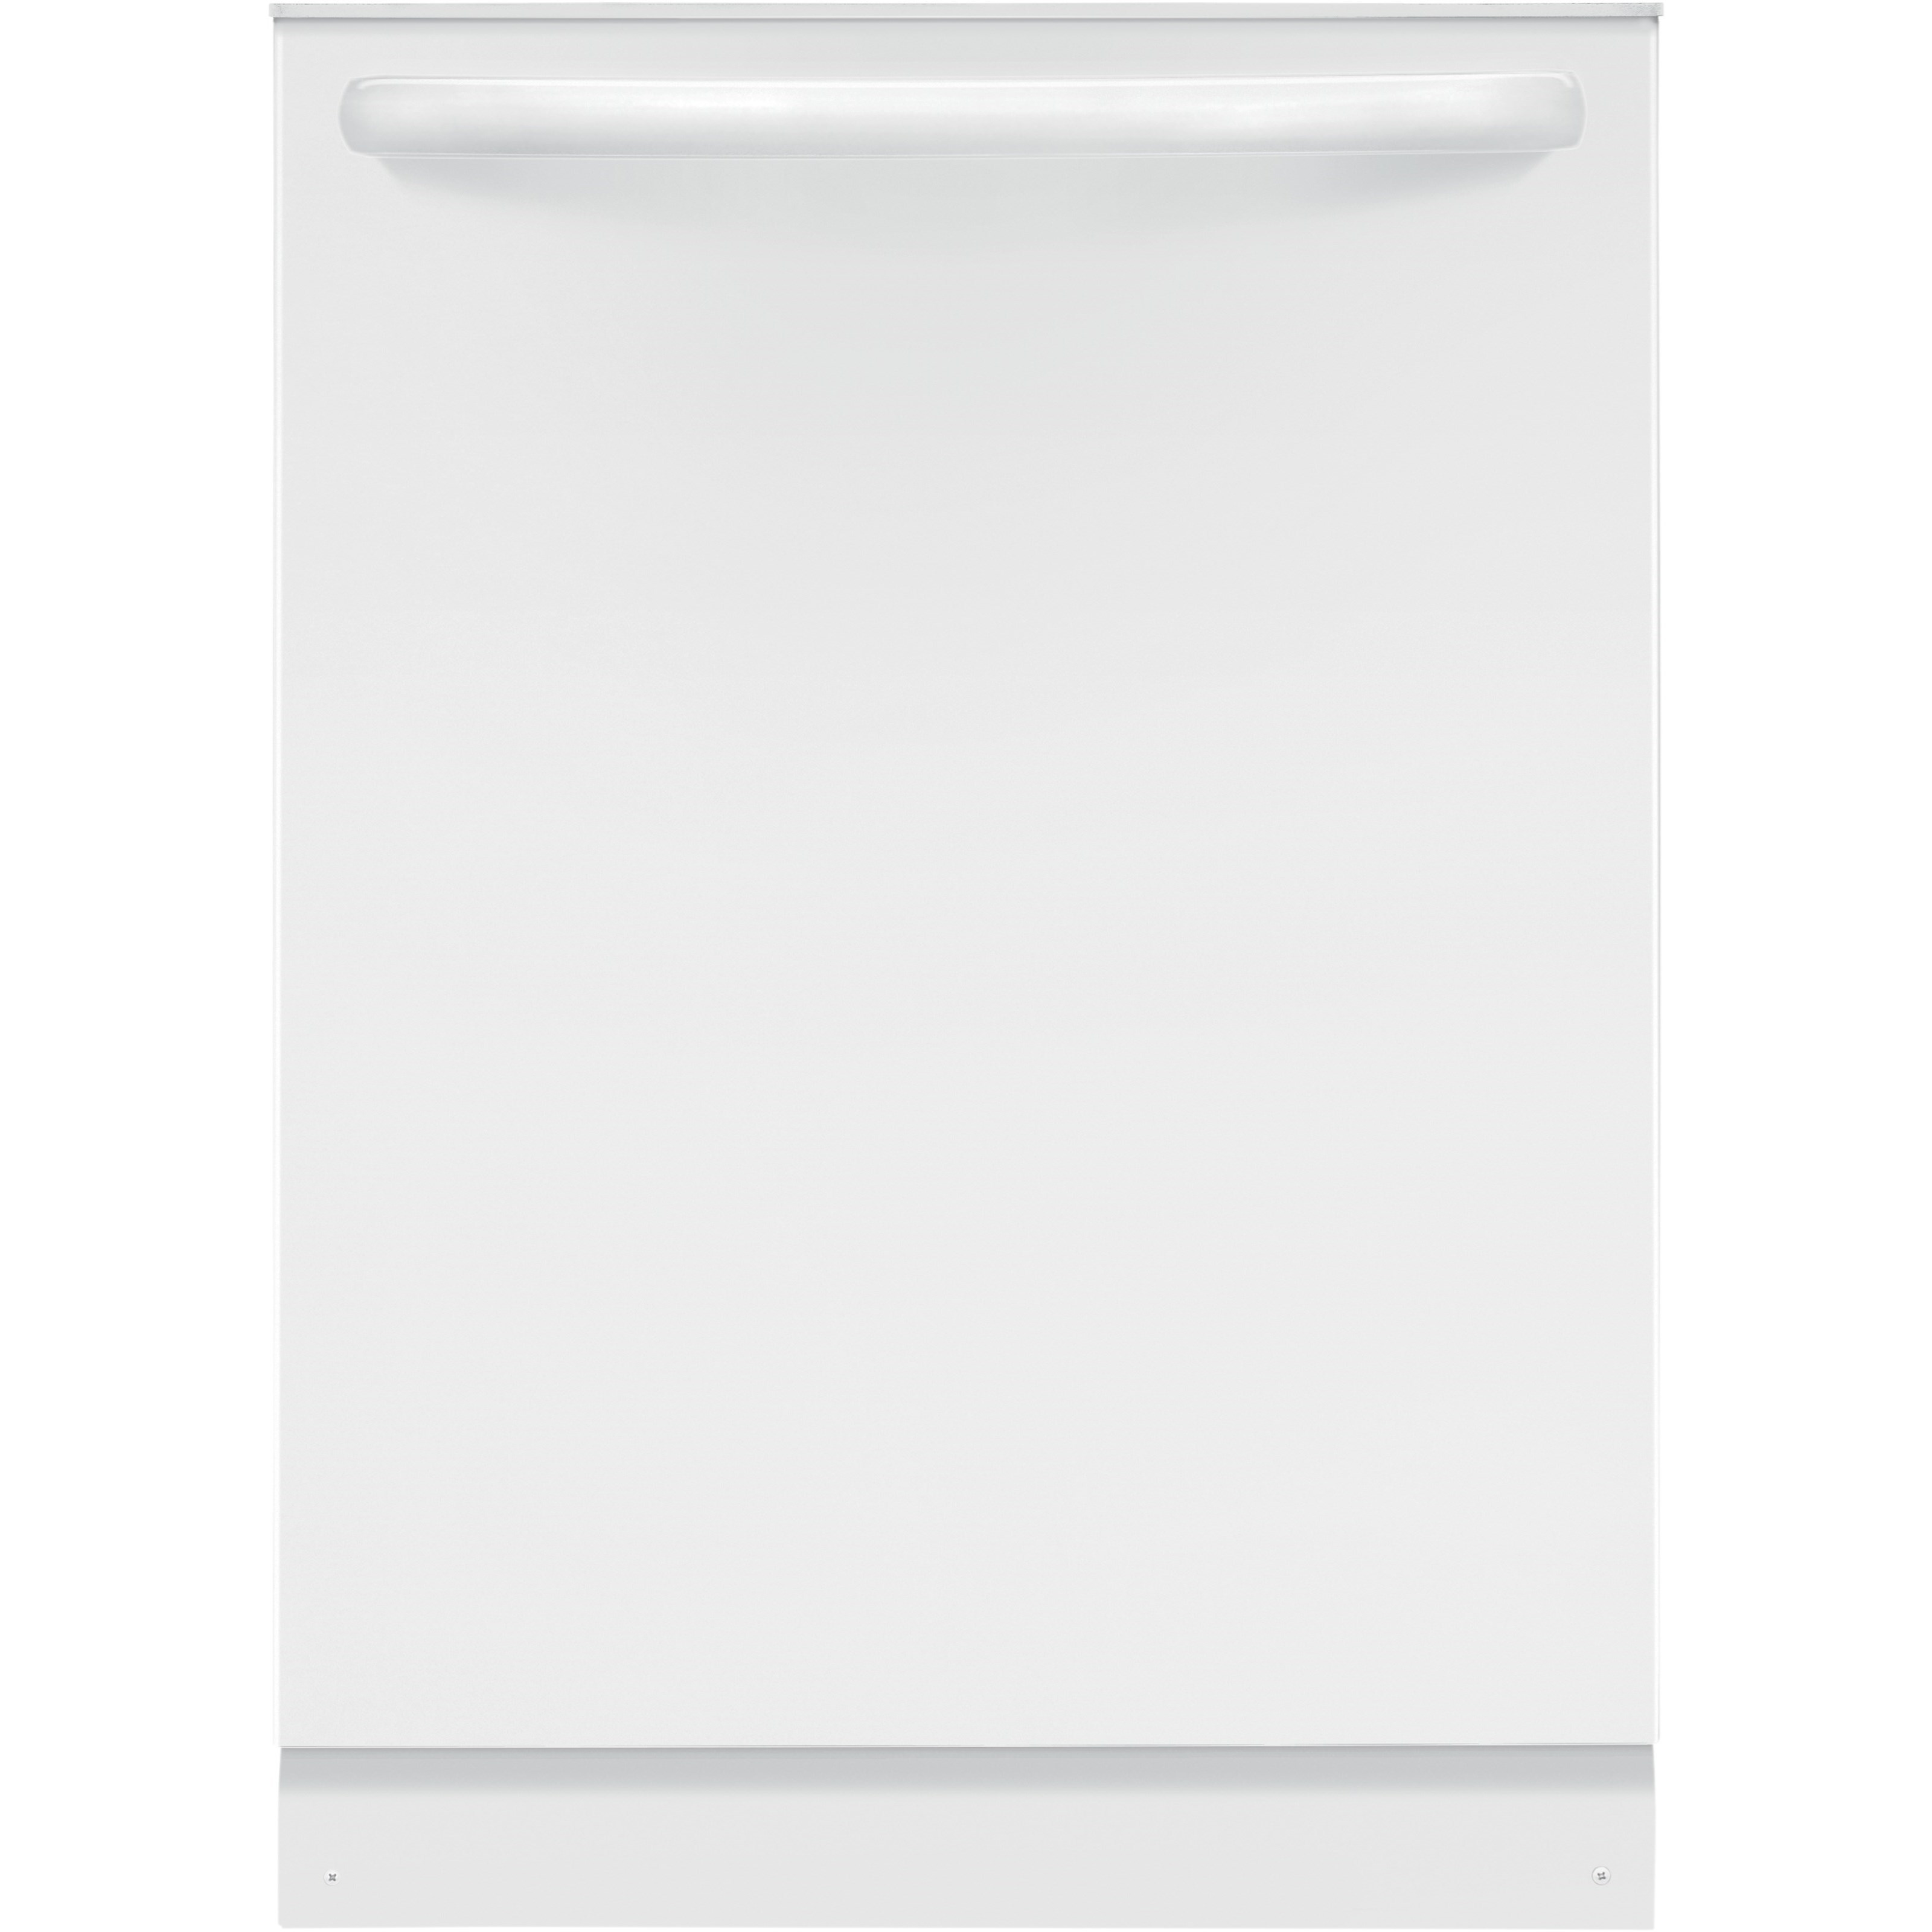 """Frigidaire Gallery Dishwashers 24"""" Built-In Dishwasher by Frigidaire at Fisher Home Furnishings"""